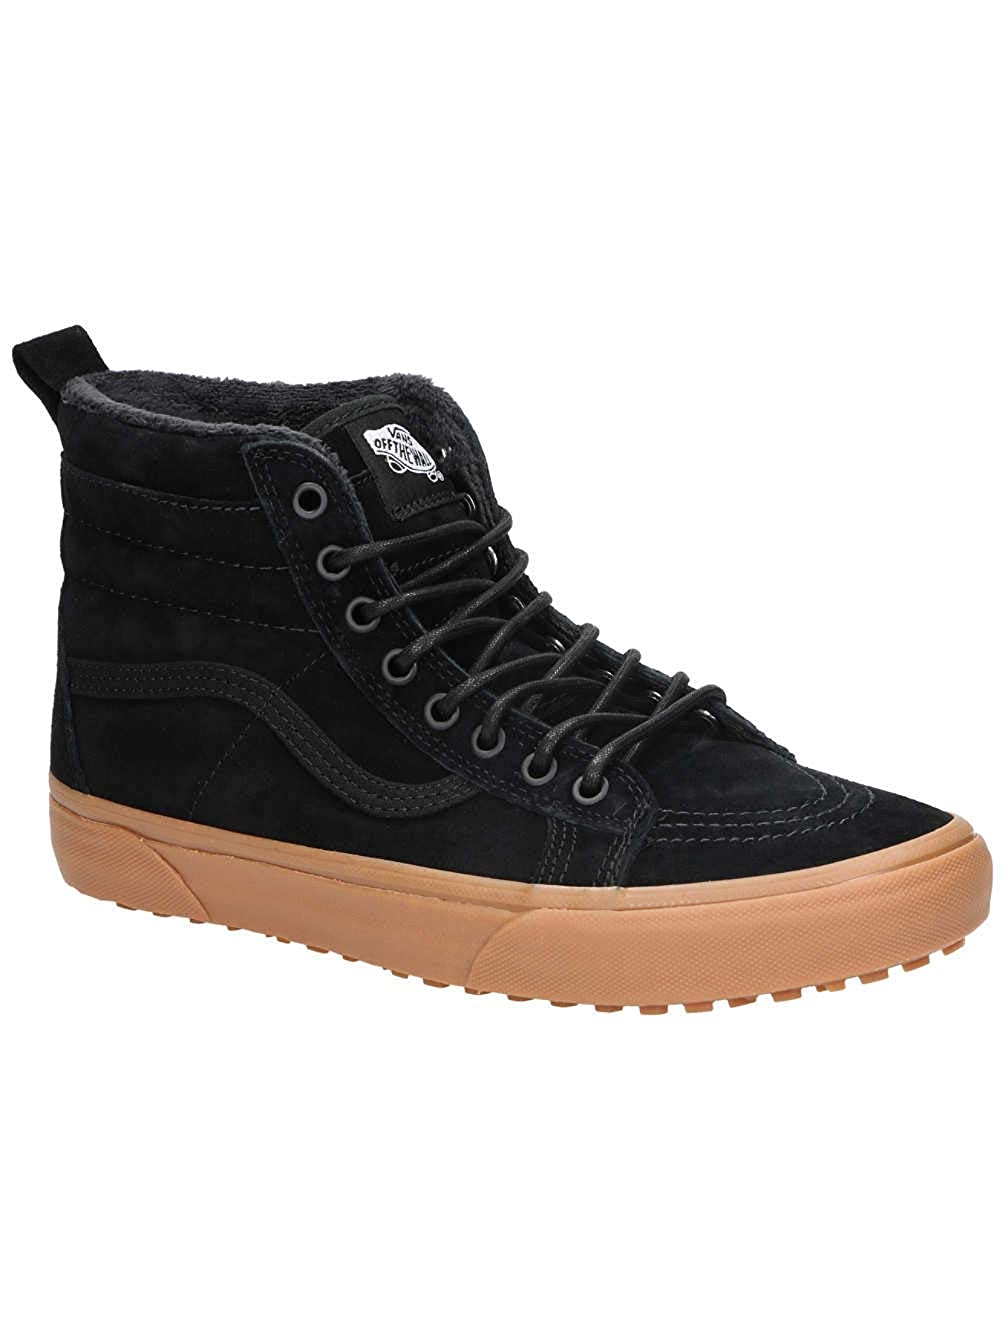 Amazon.com  Vans Sk8 Hi MTE  Shoes 5a05132c5